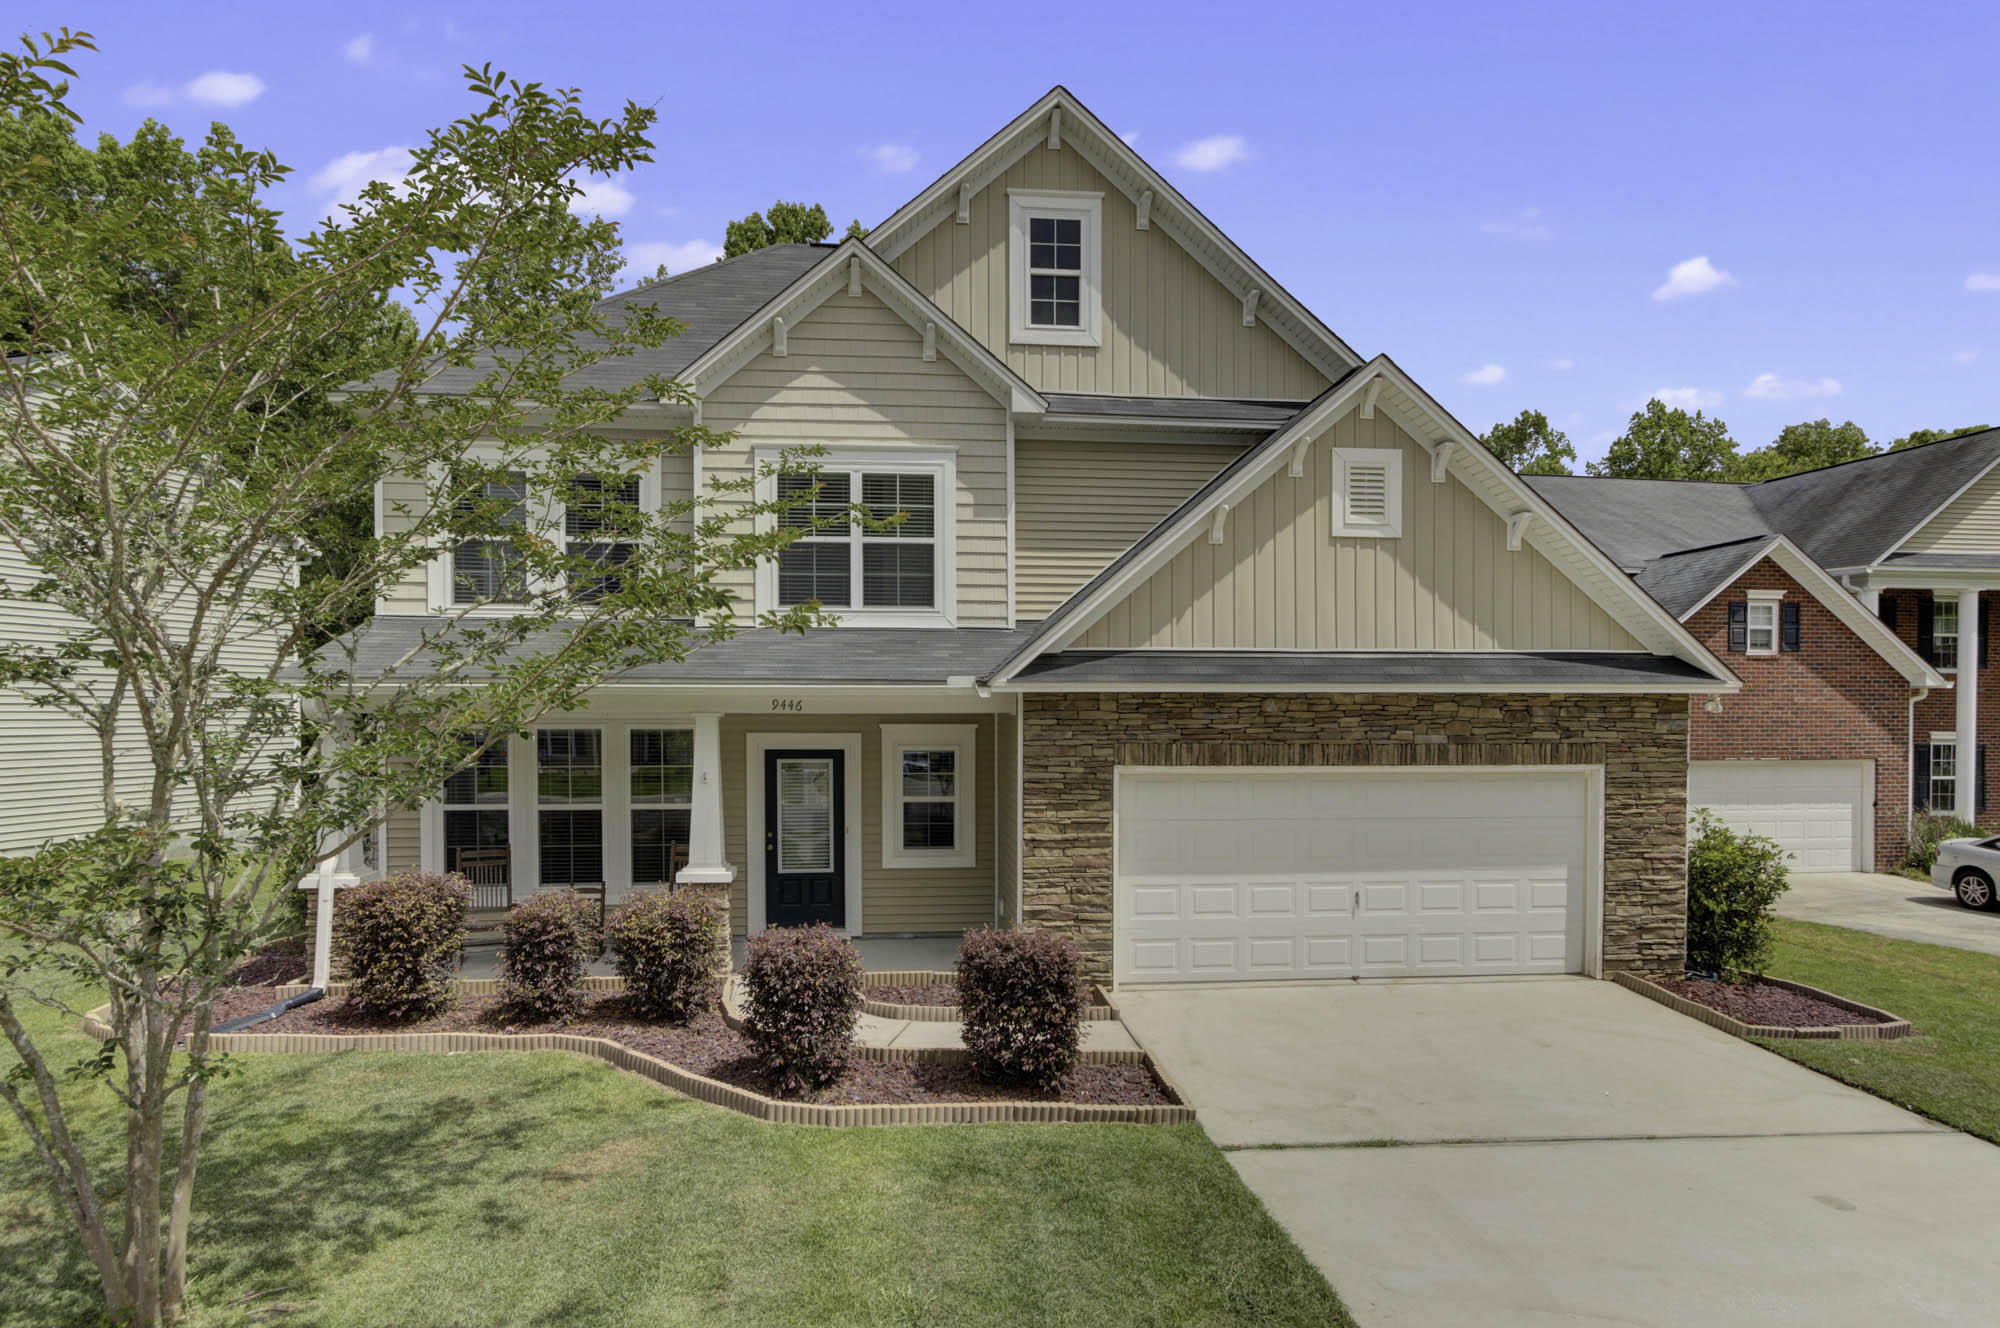 9446 Netted Charm Court Ladson, SC 29456